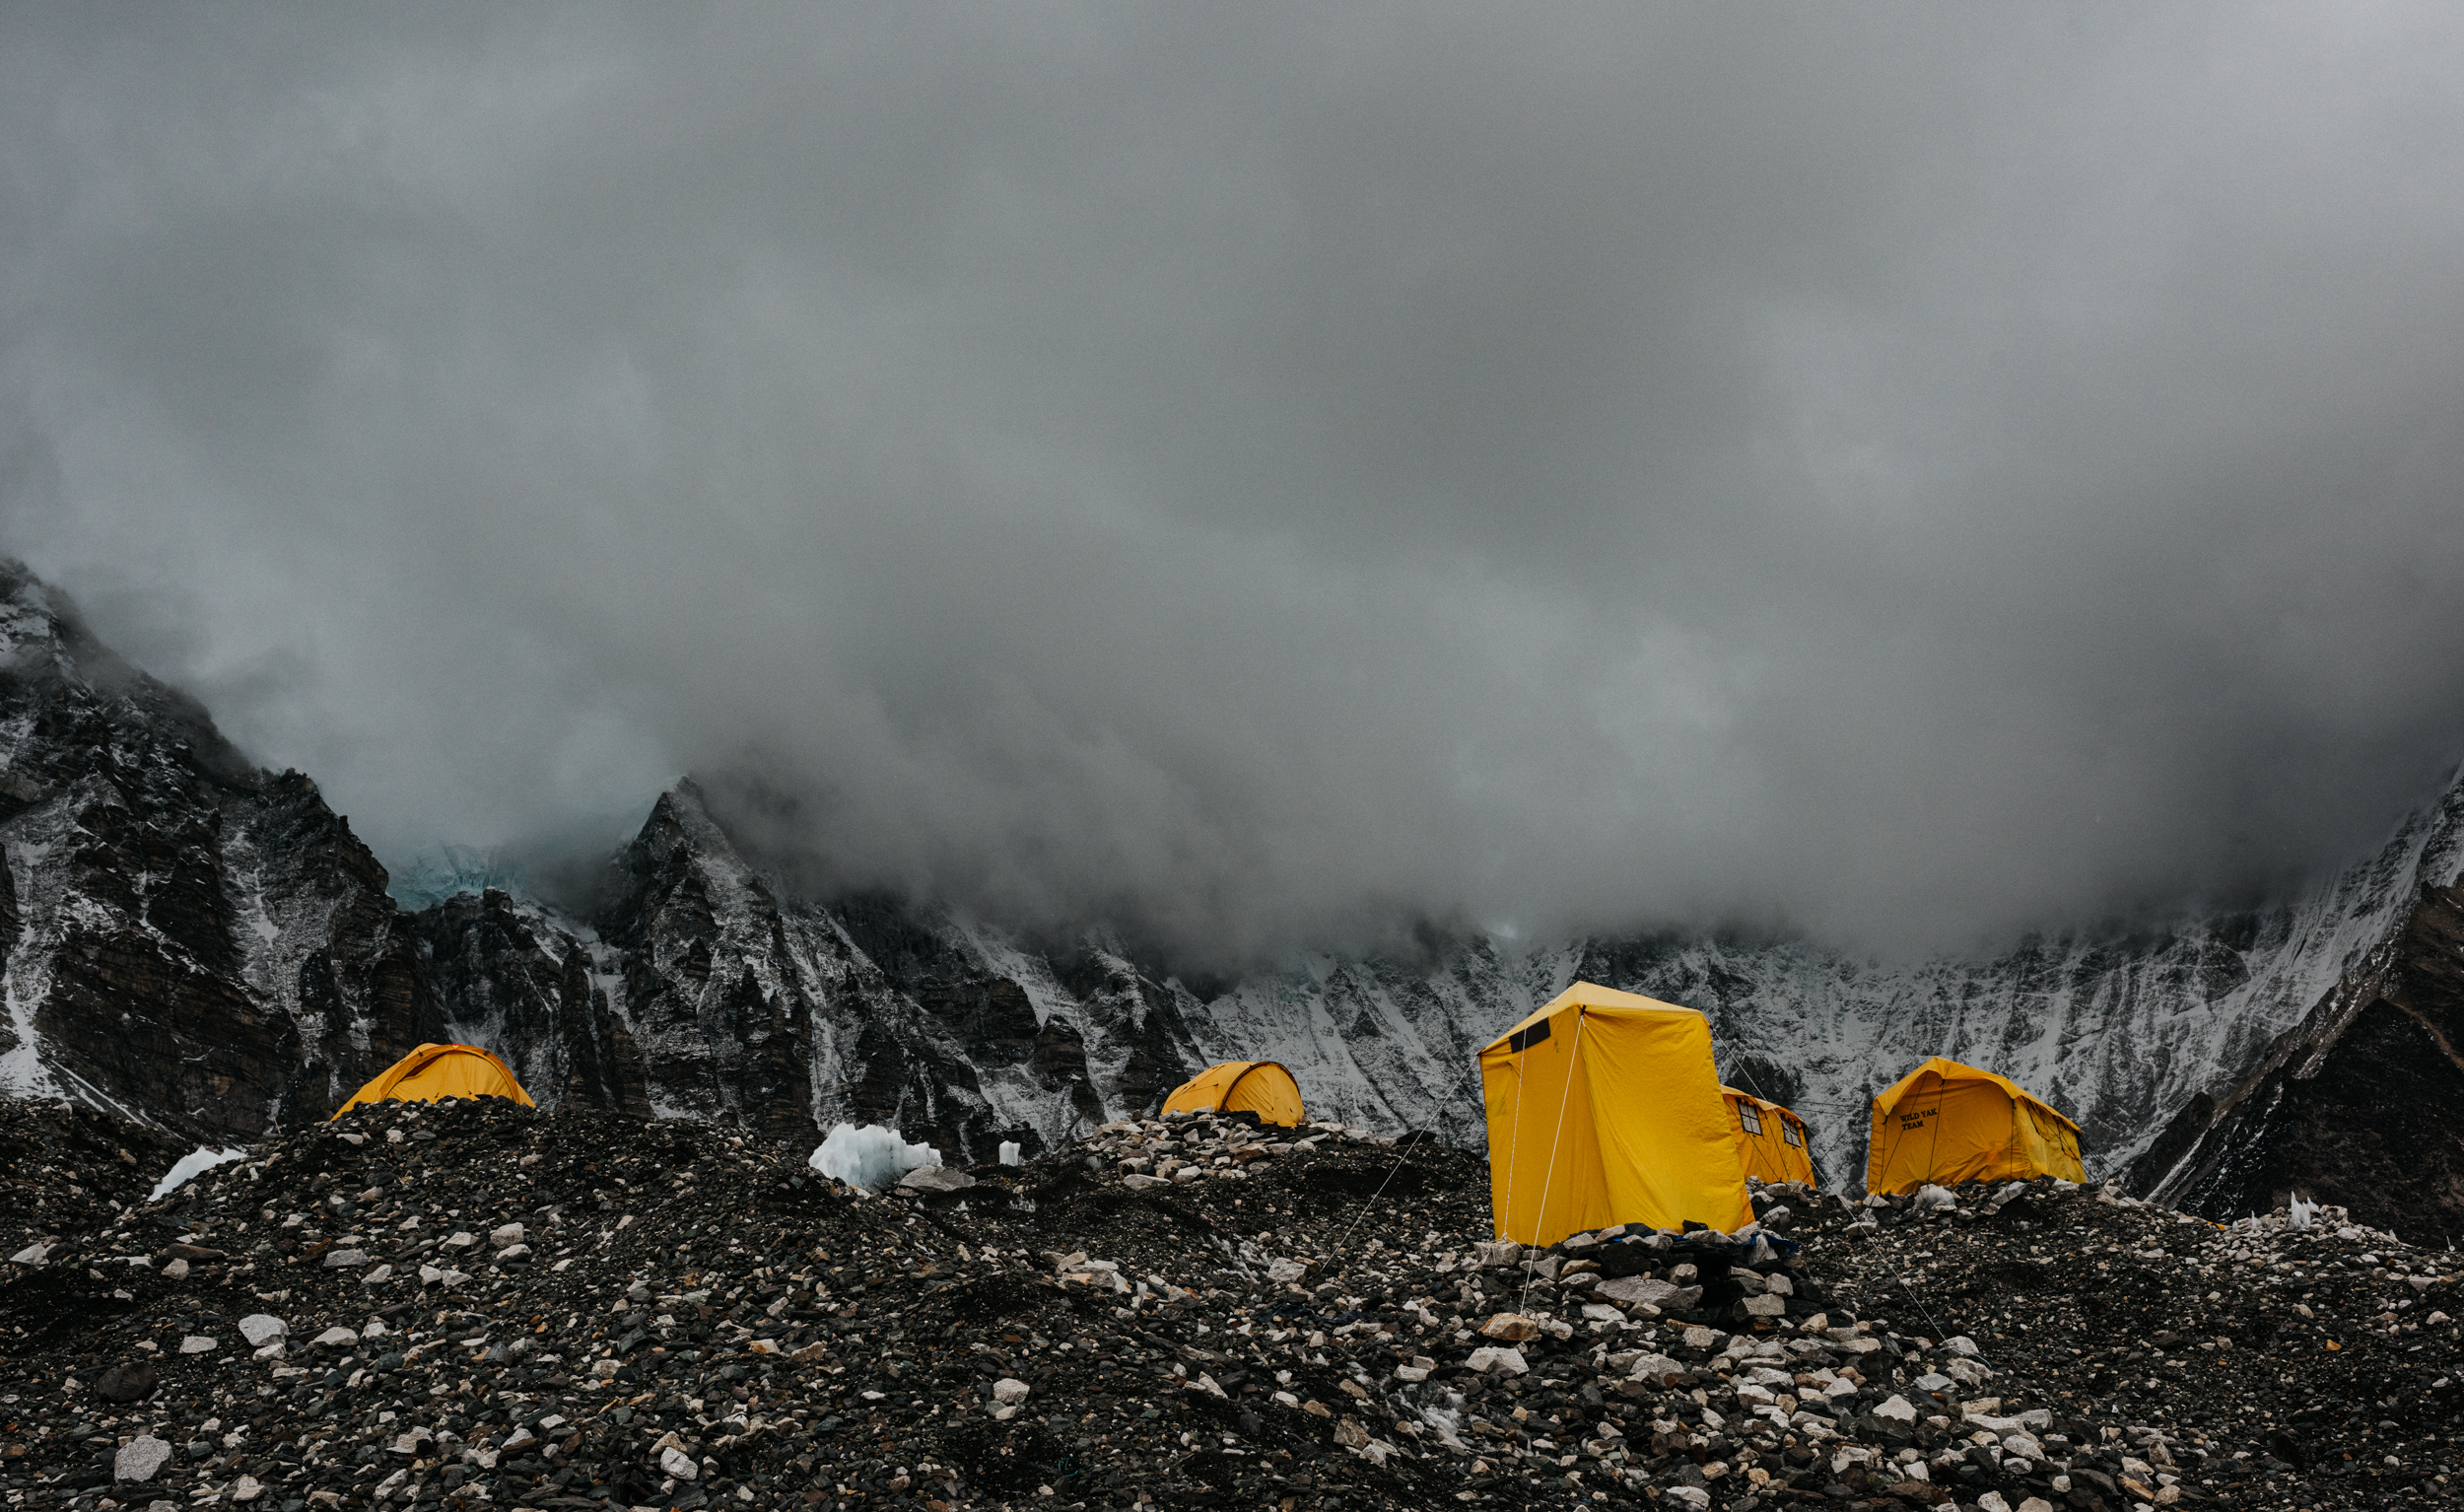 Nepal_EverestBaseCamp_2019_TaraShupe_Photography_DSC_4227.jpg